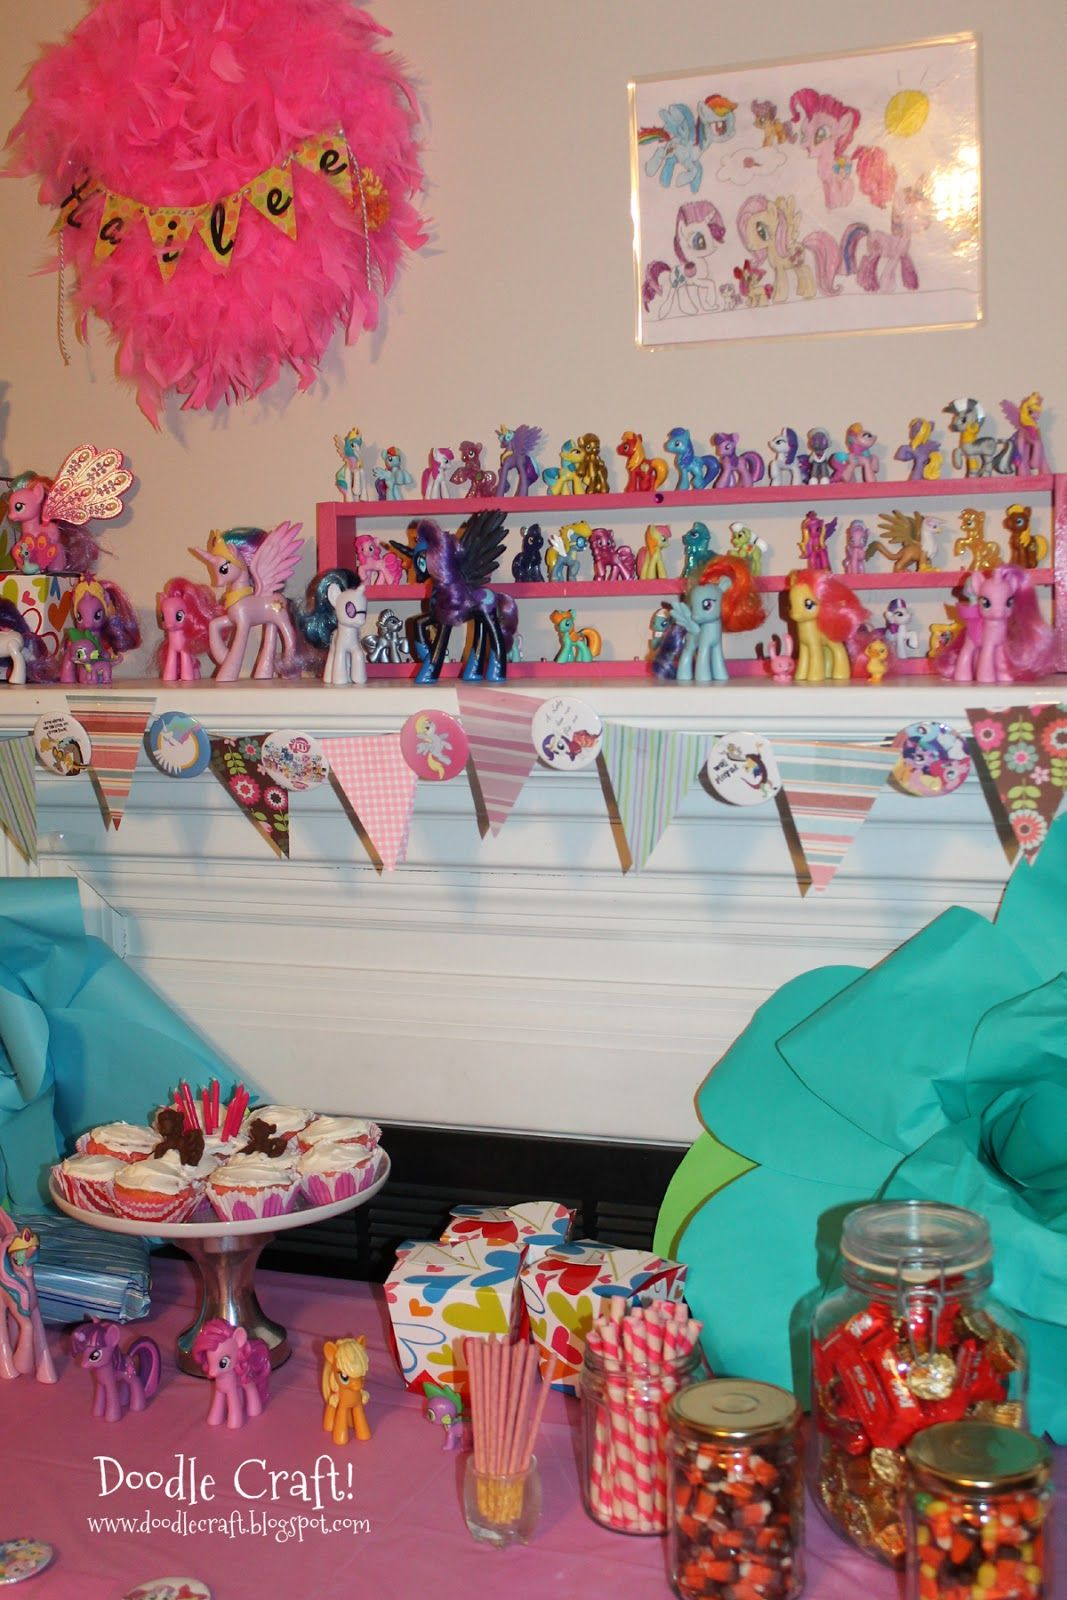 Google themes my little pony - My Little Pony Friendship Is Magic Party Handmade Google Search